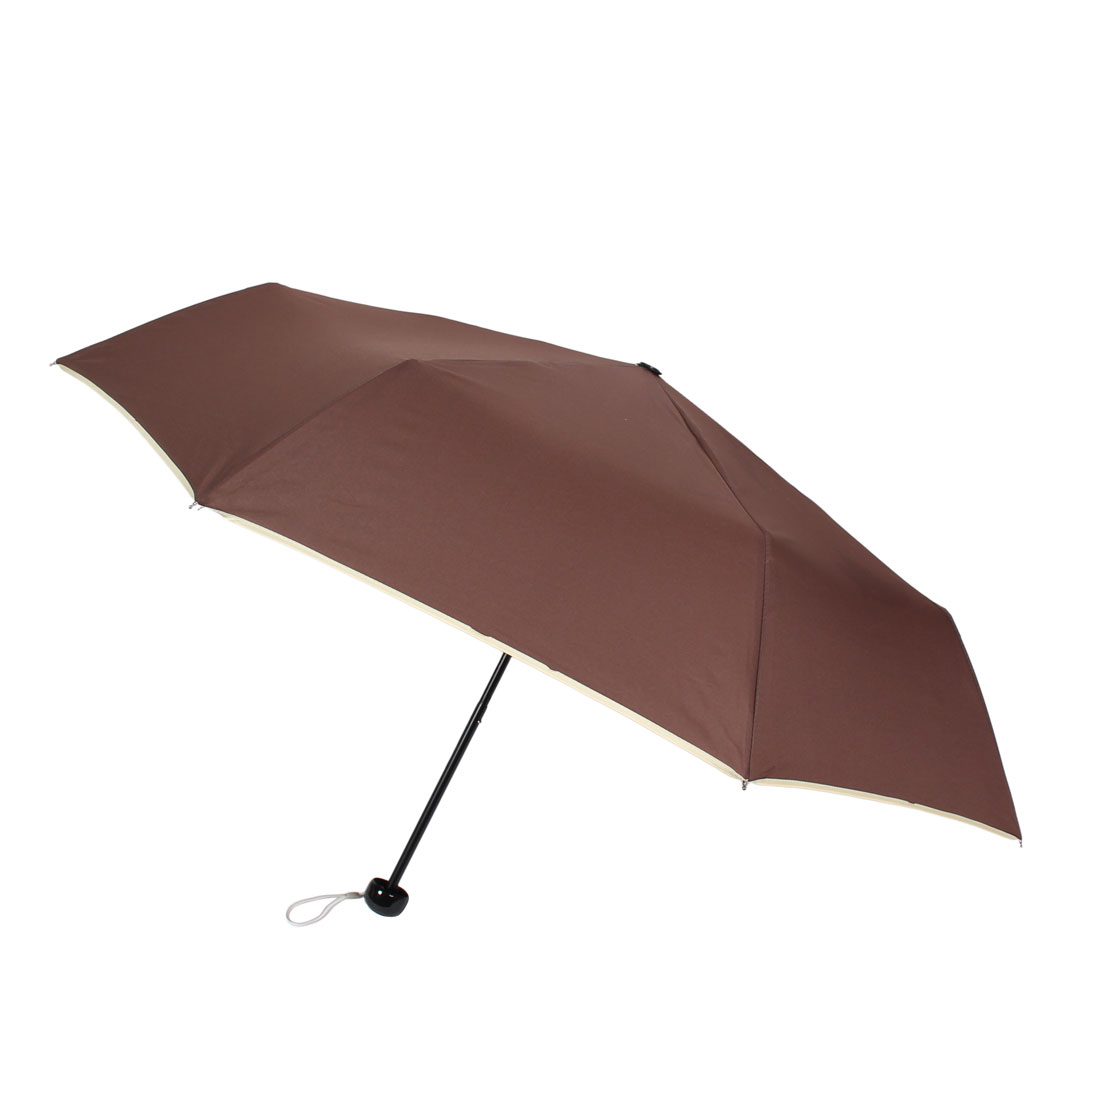 Brown Canopy Umbrella Men's Rain Handy Foldable Brolly